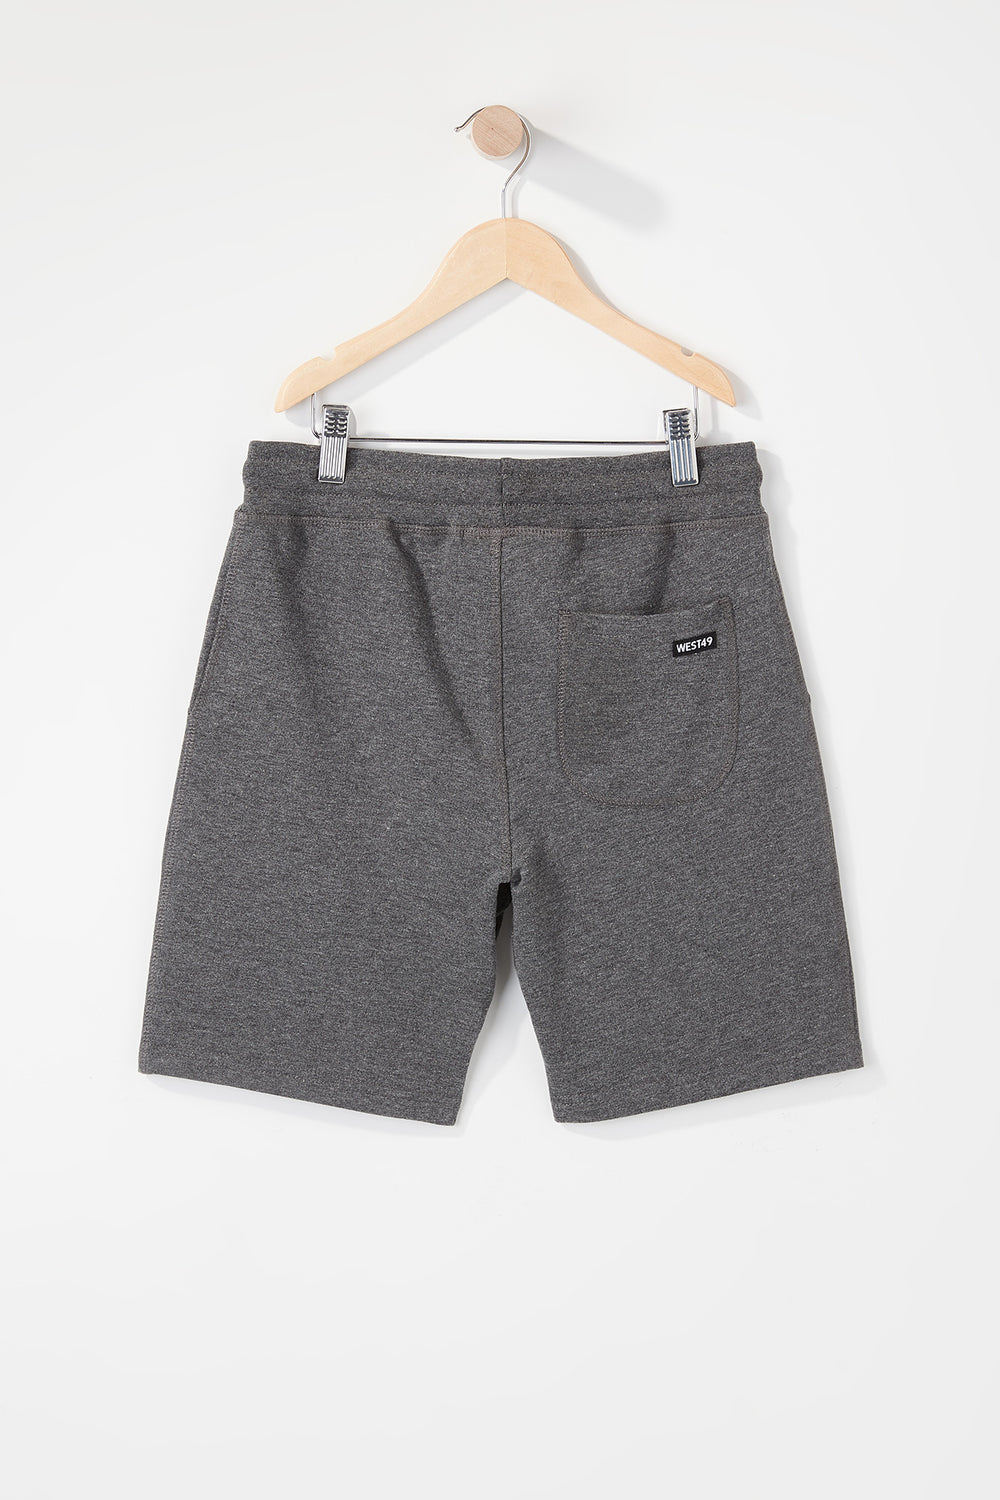 West49 Boys Basic Short Charcoal